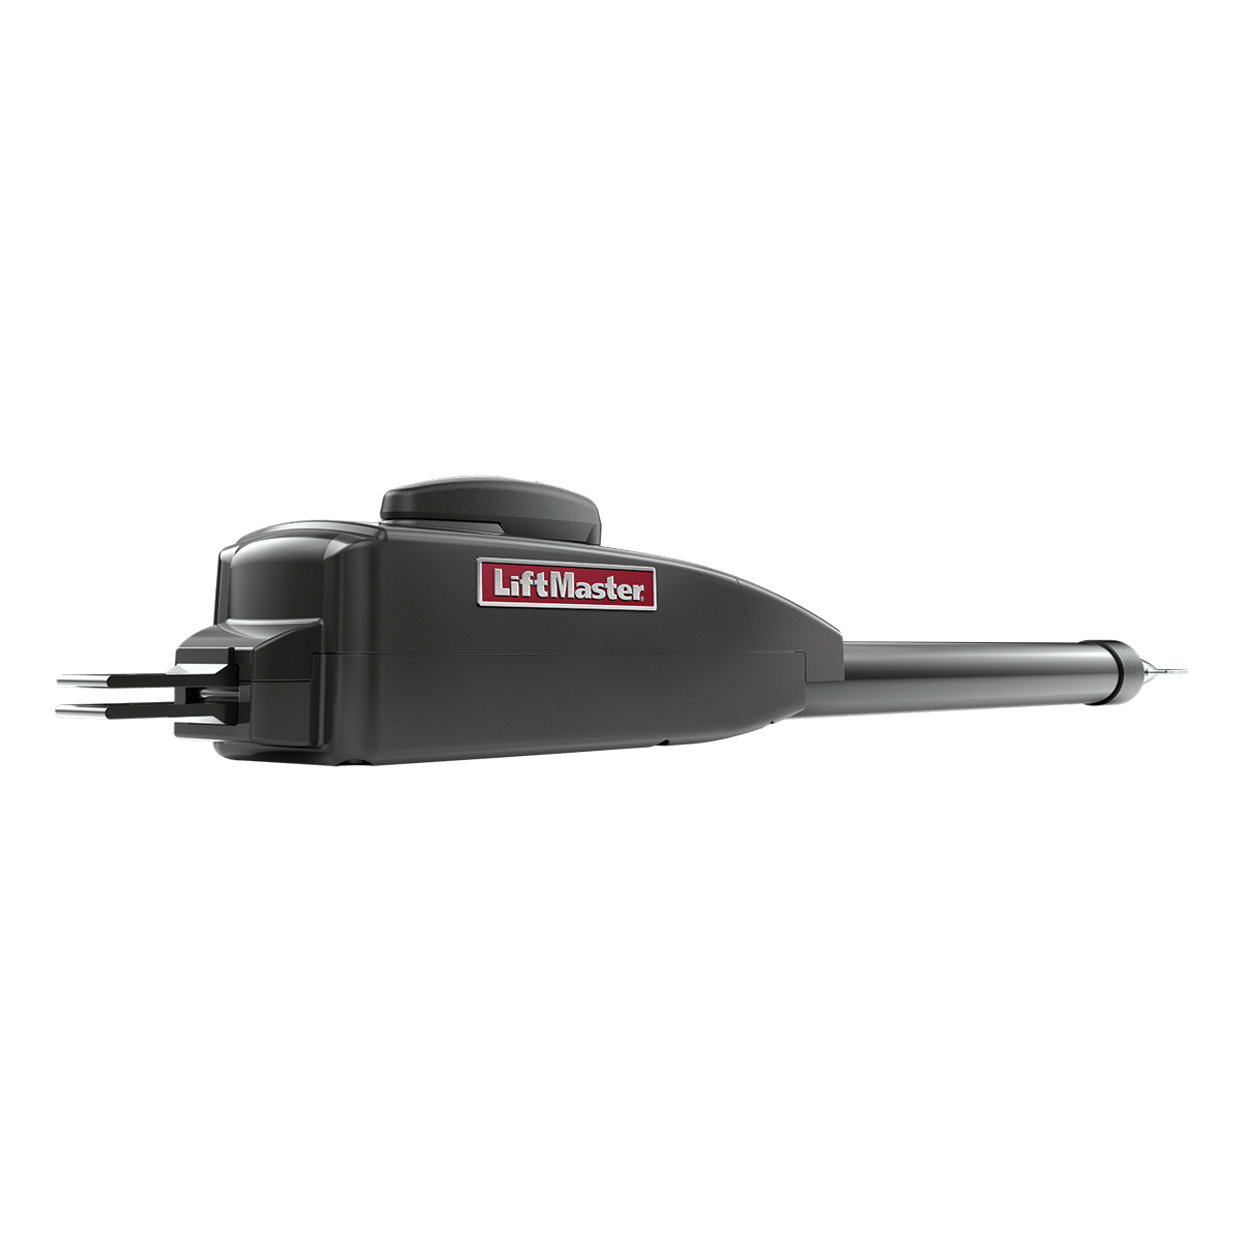 hight resolution of liftmaster la412pkgu